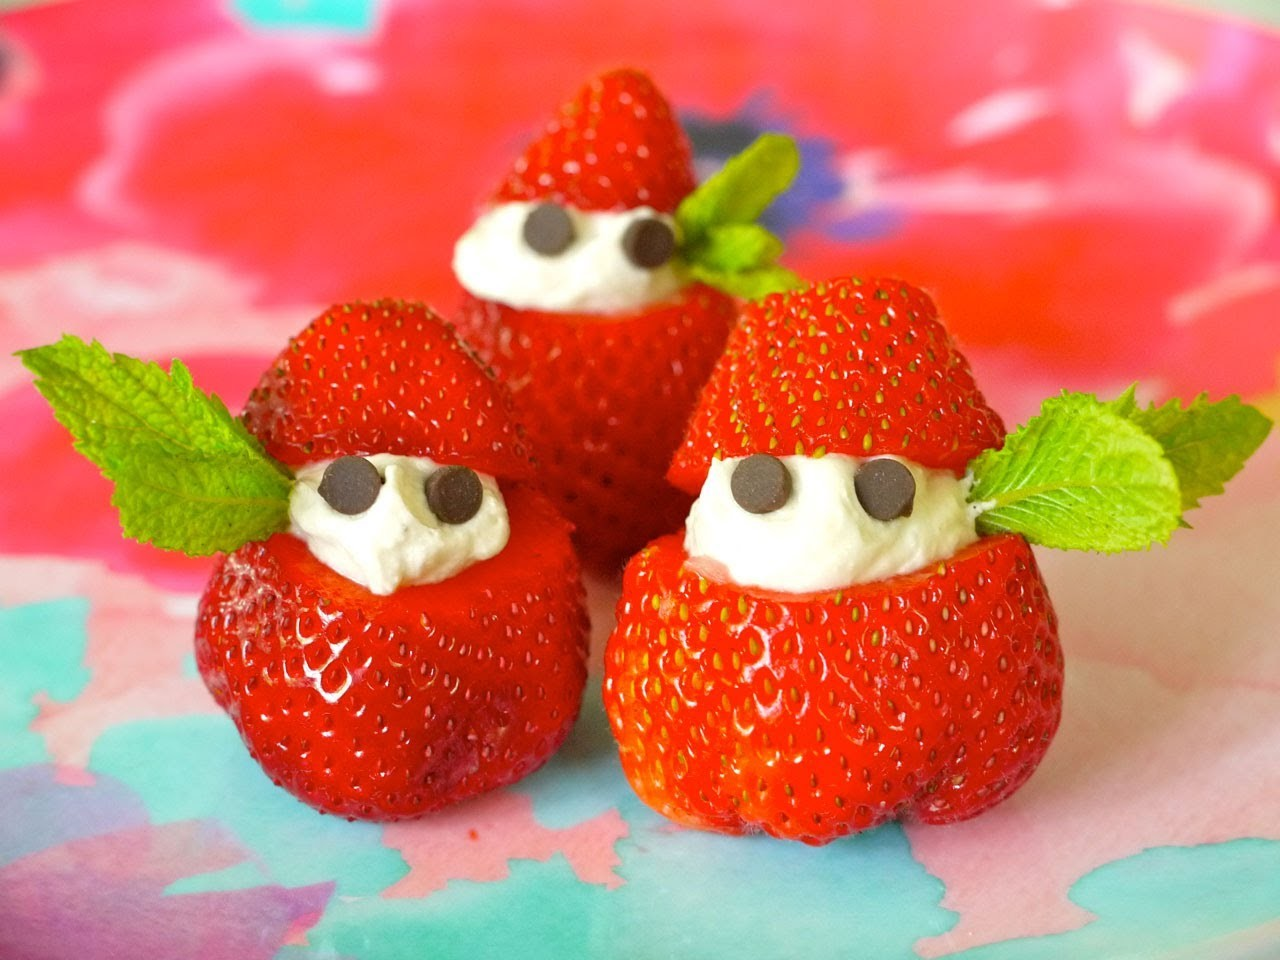 Healthy Snack Recipe for Children: How to Make Strawberries & Cream with Kids - Weelicious